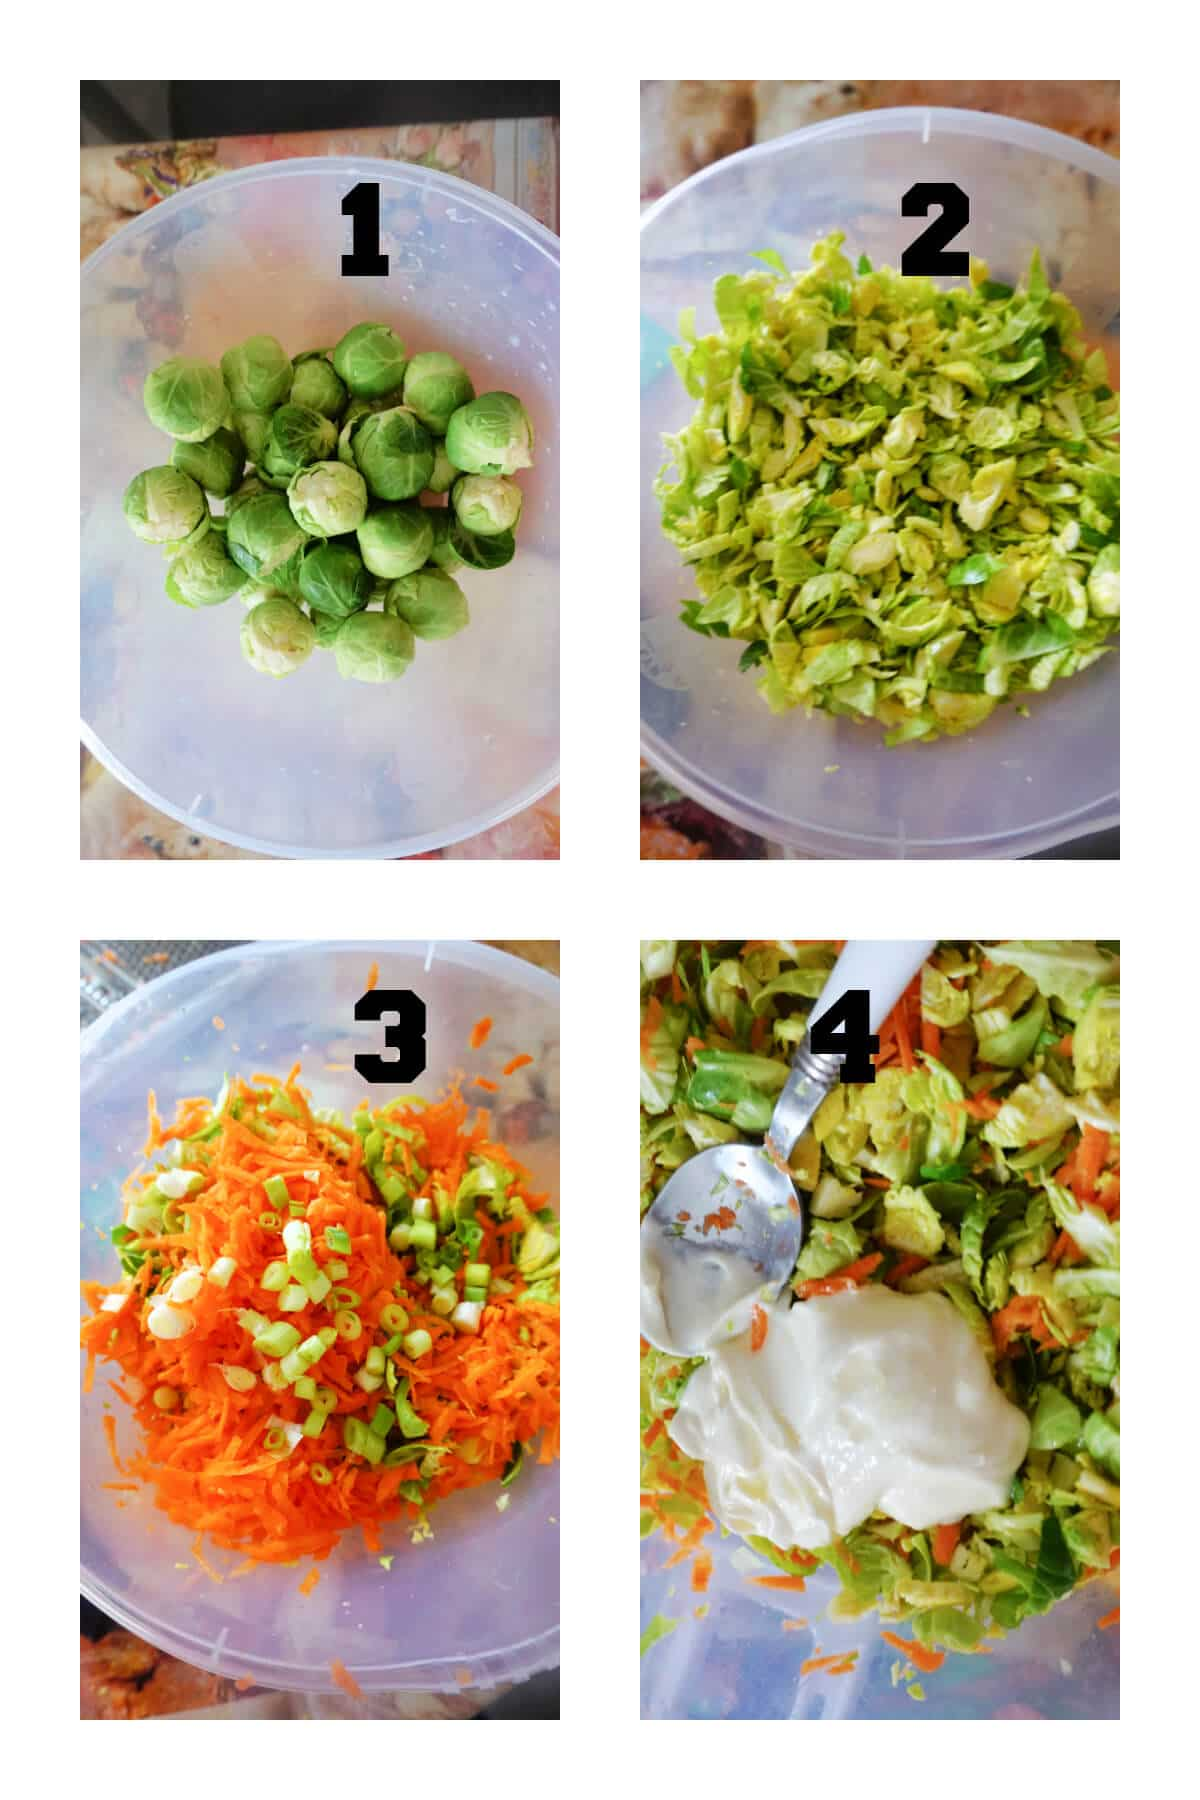 Collage of 4 photos to show how to make brussel sprout slaw